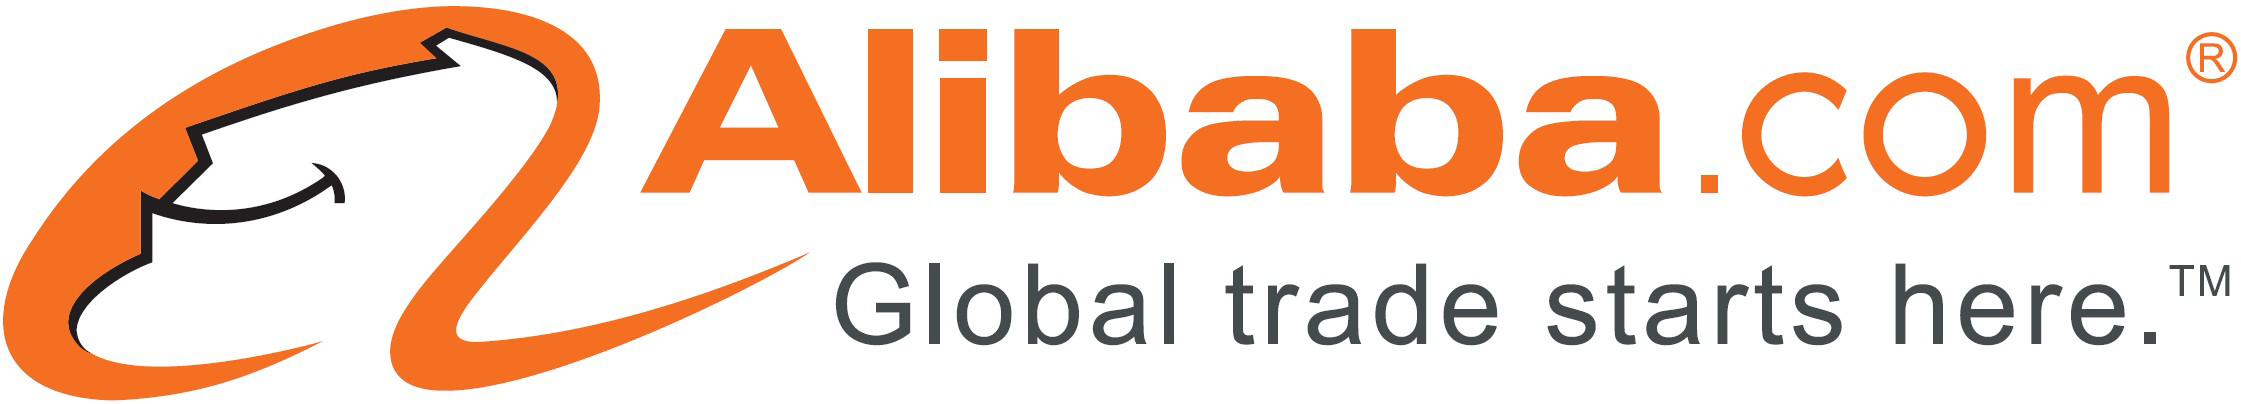 library_logos_alibaba_lund